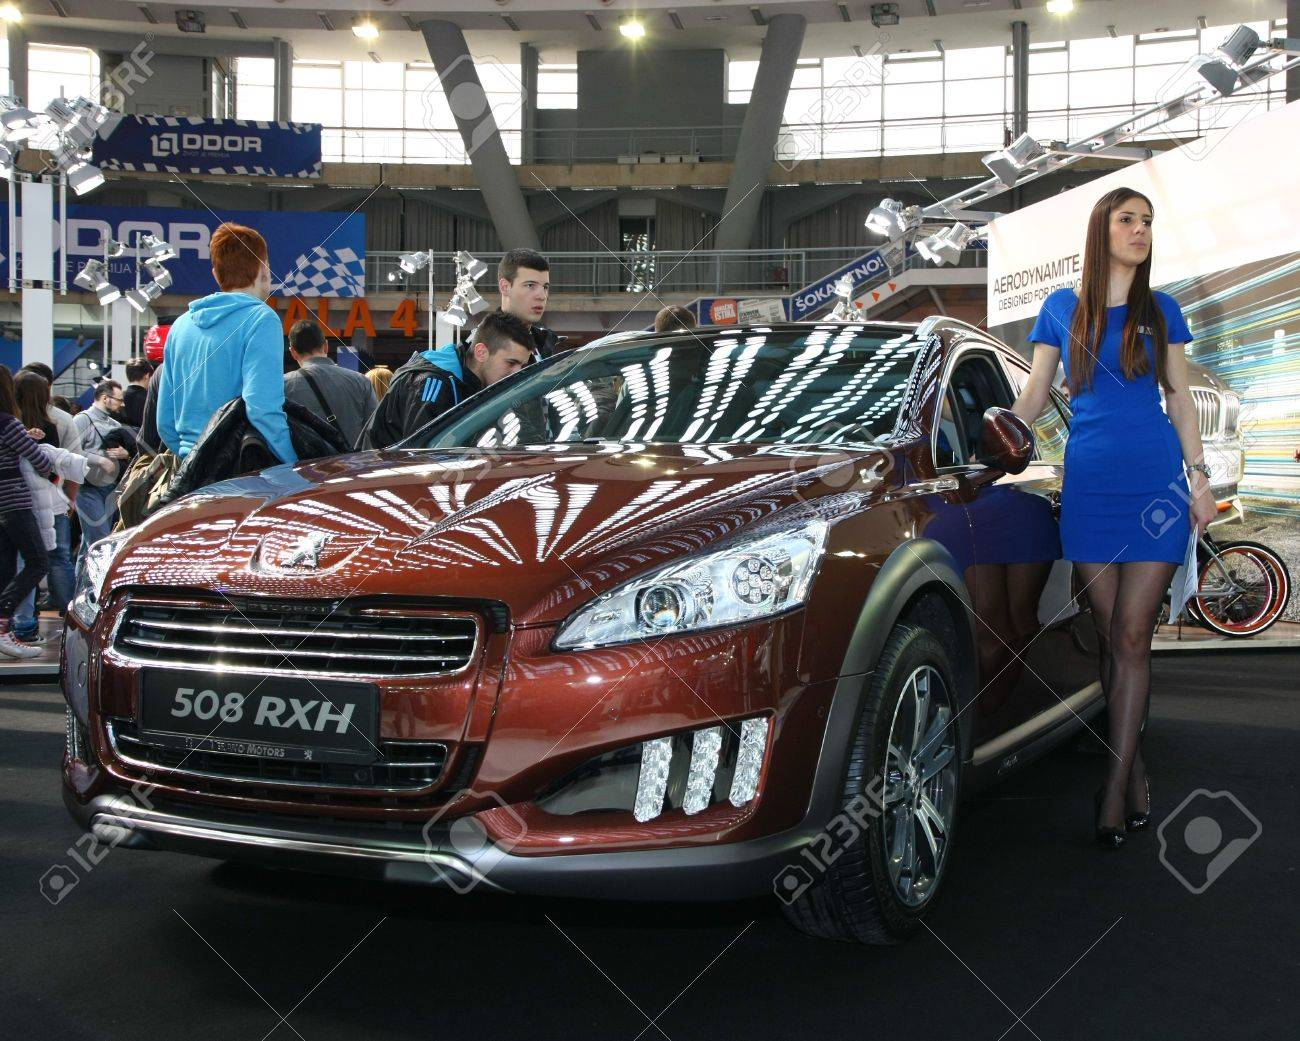 51st Belgrade International Car Show March 2013 Peugeot 508 Rxh Stock Photo Picture And Royalty Free Image Image 19169952